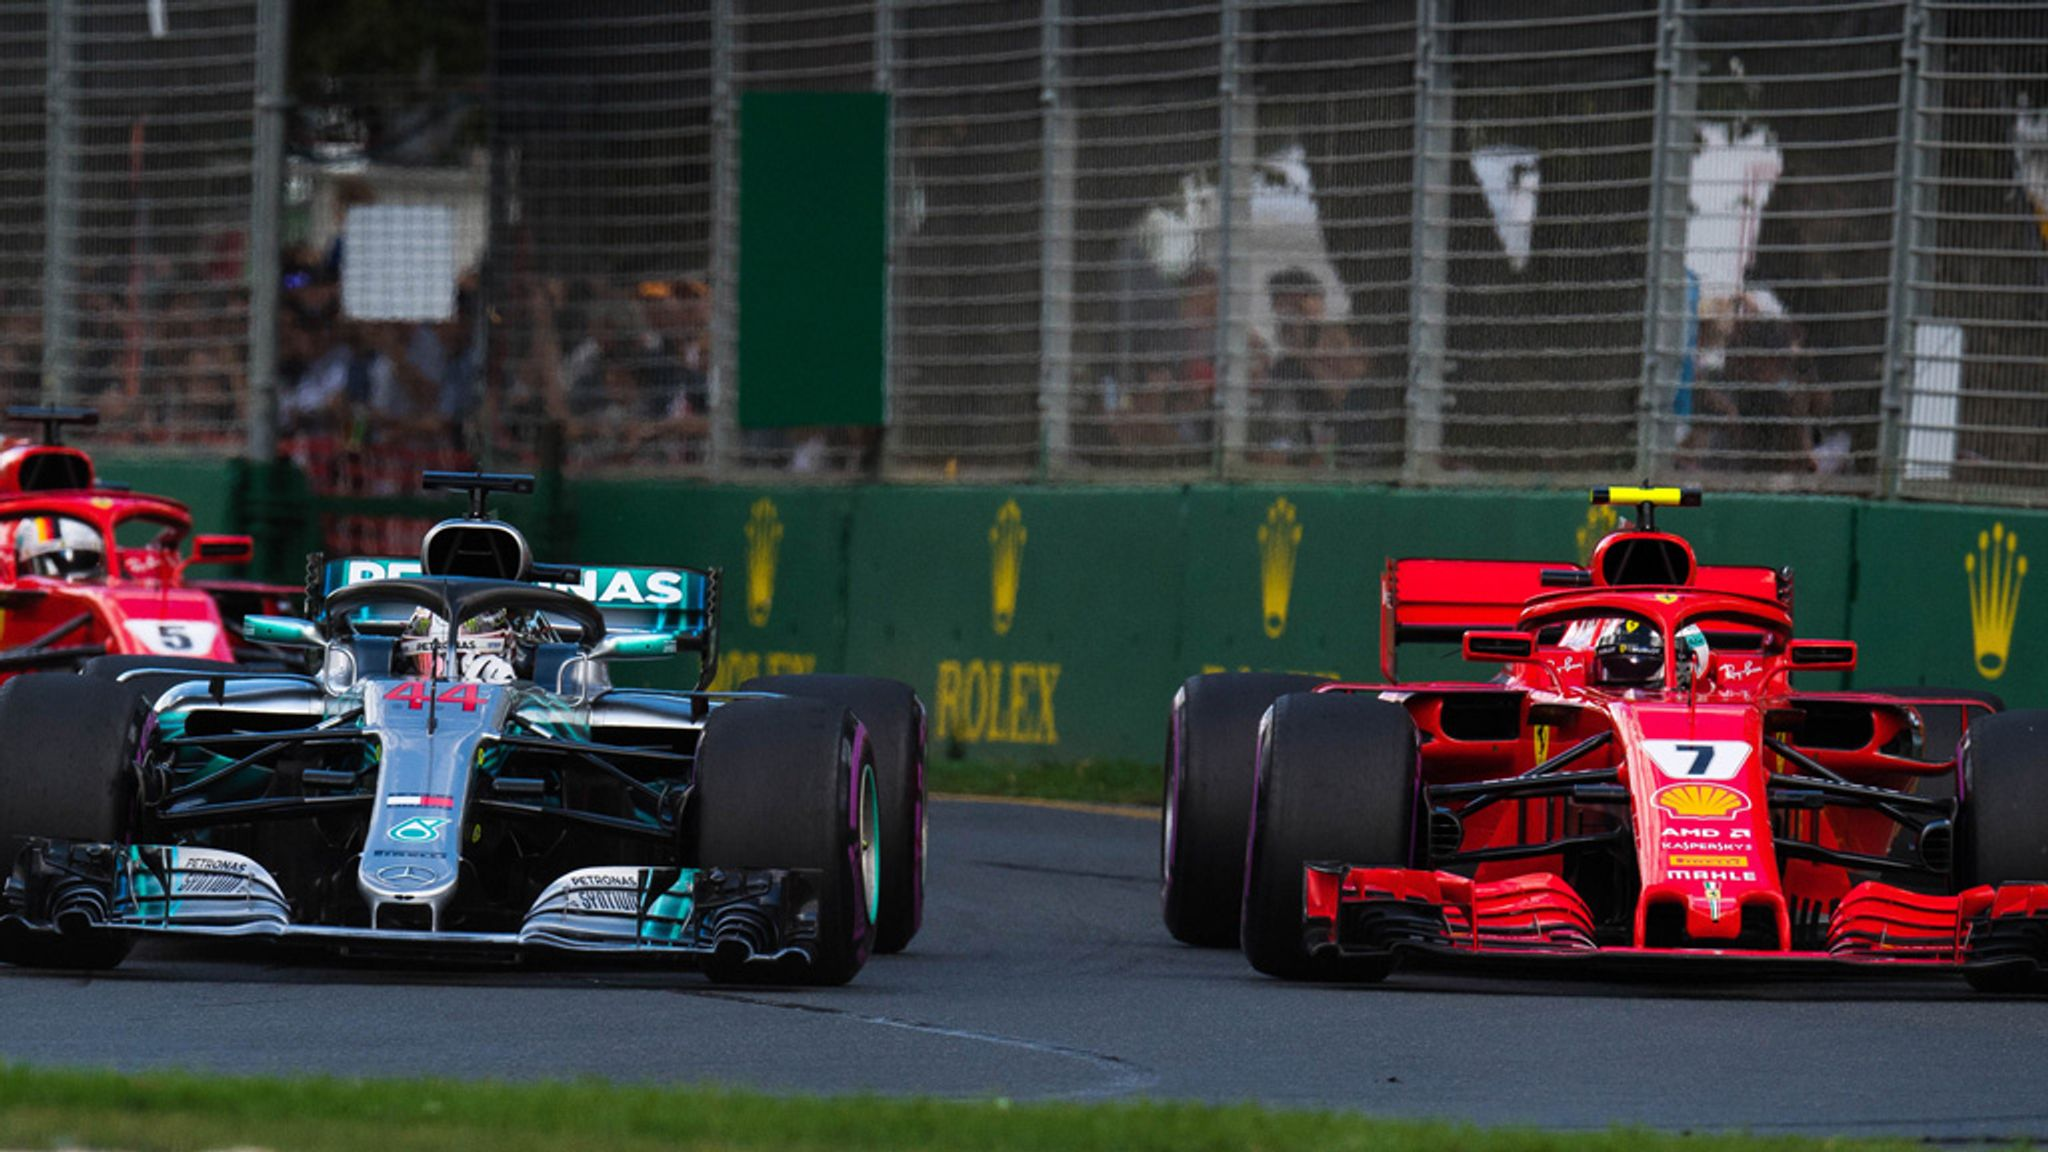 Formula 1 2019: F1 race start times revealed | F1 News